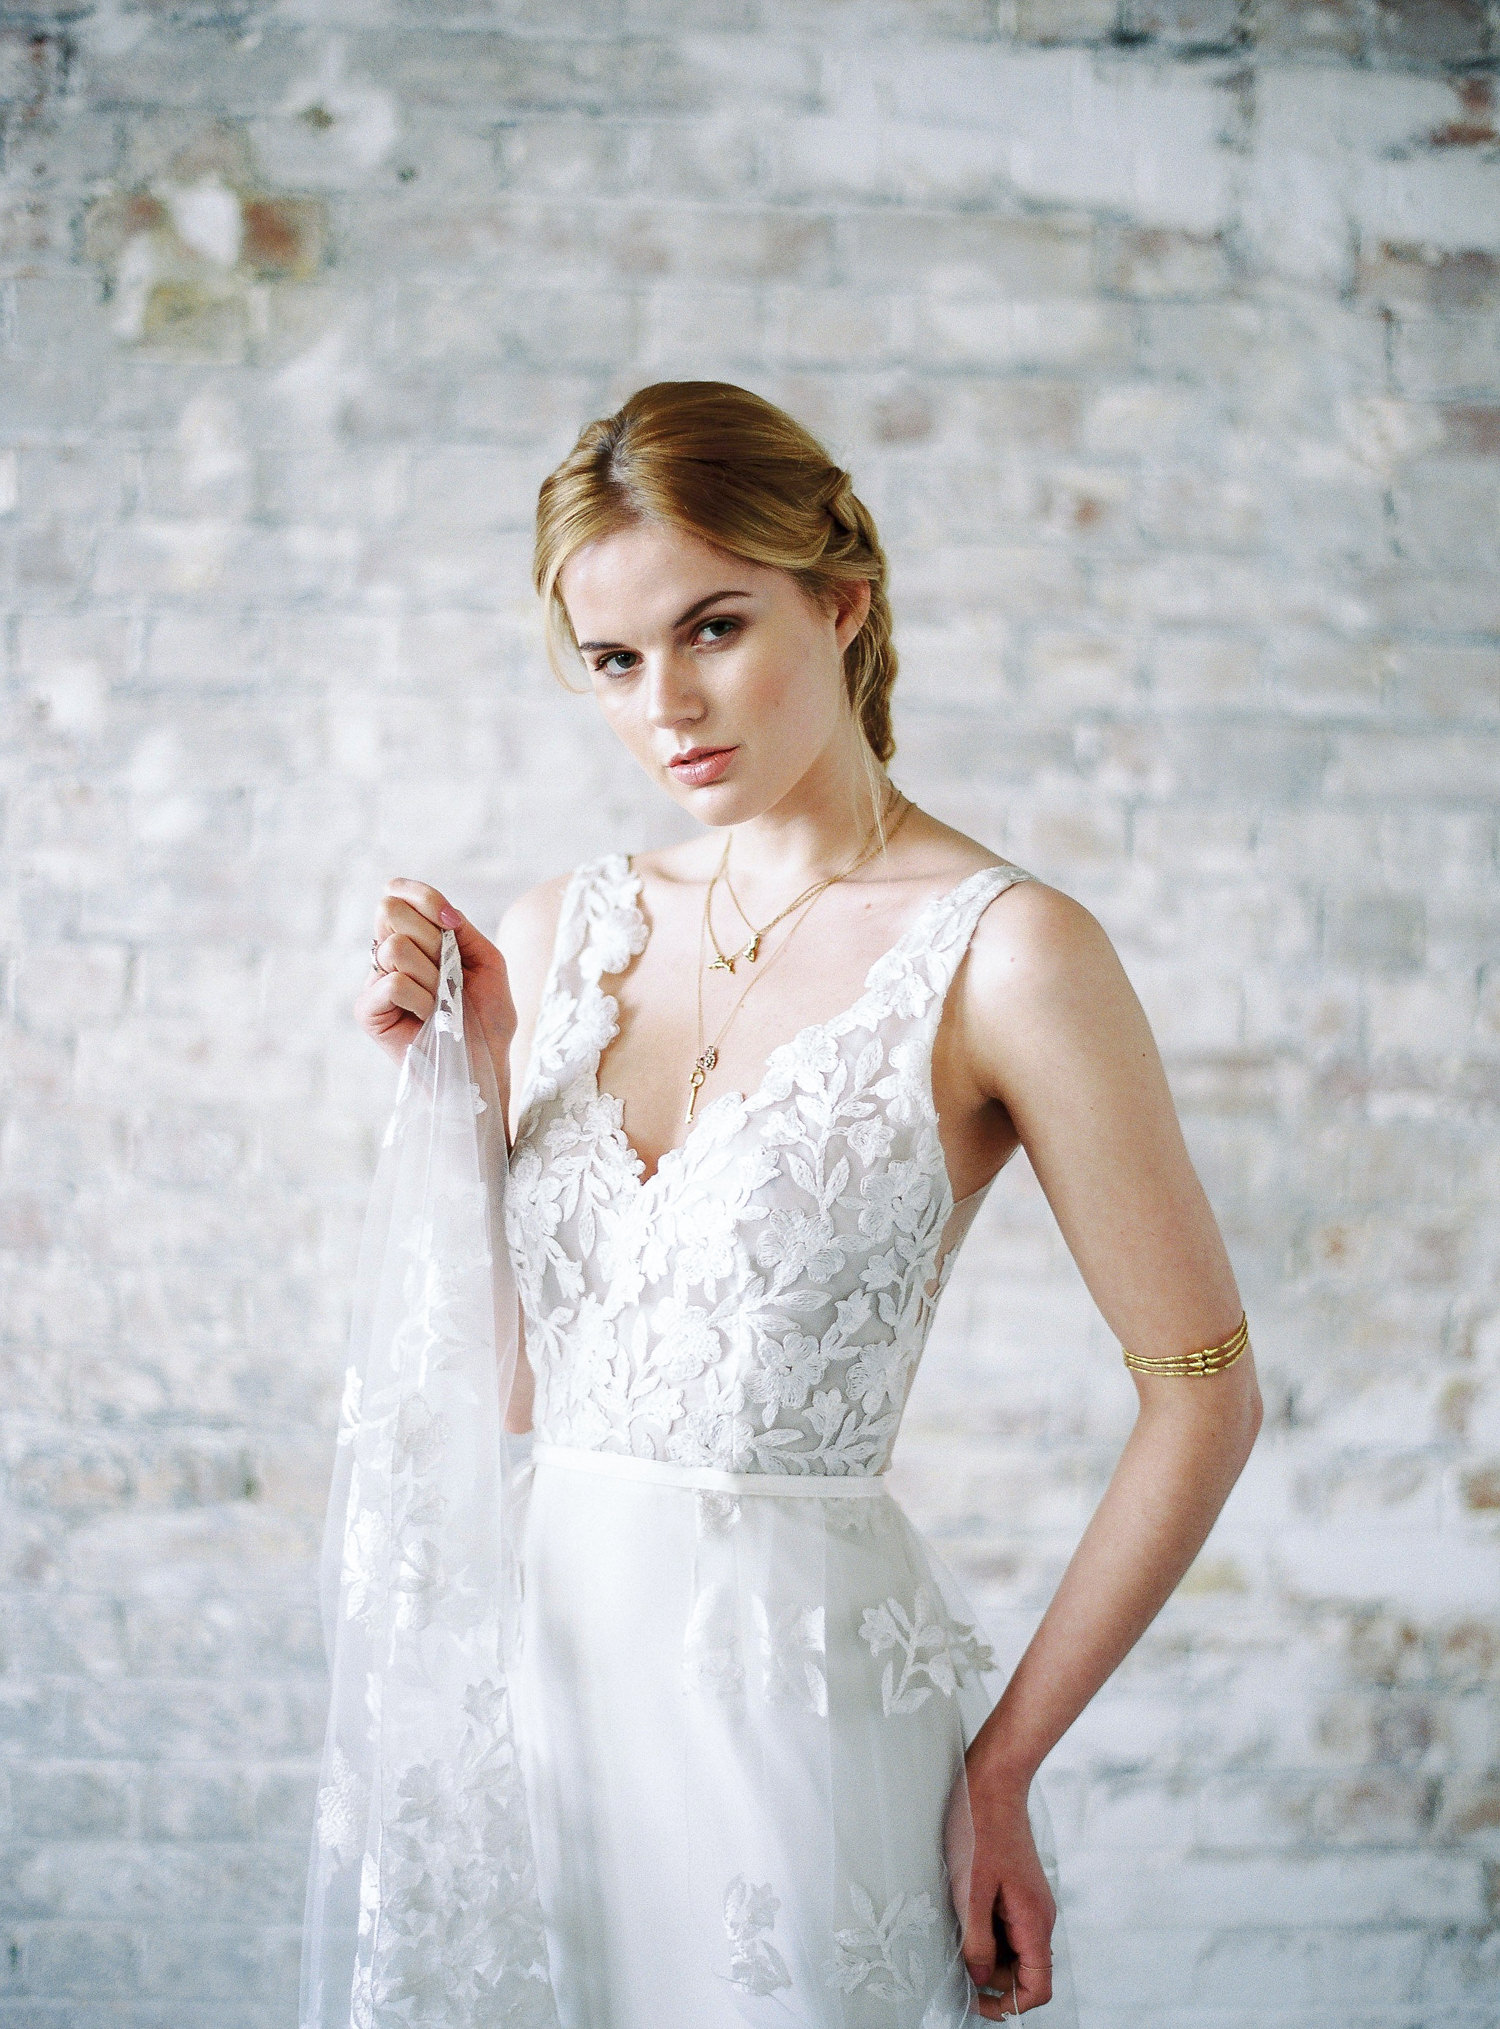 Light Catcher Delicate Darkness, Lucy Davenport Photography, layered wedding dress